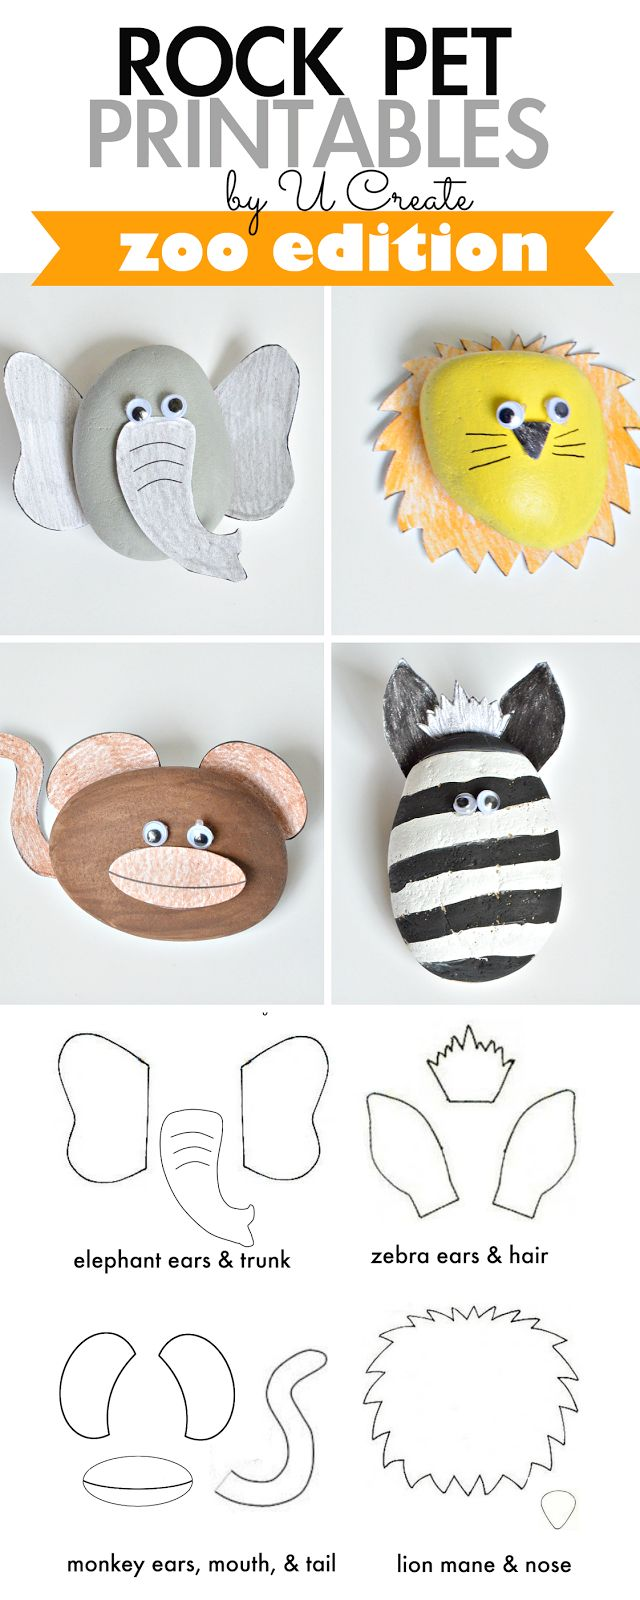 Rock Pet Printables: Zoo Edition - kids will have hours of creative and imaginative play by painting, coloring, and making pet rocks!